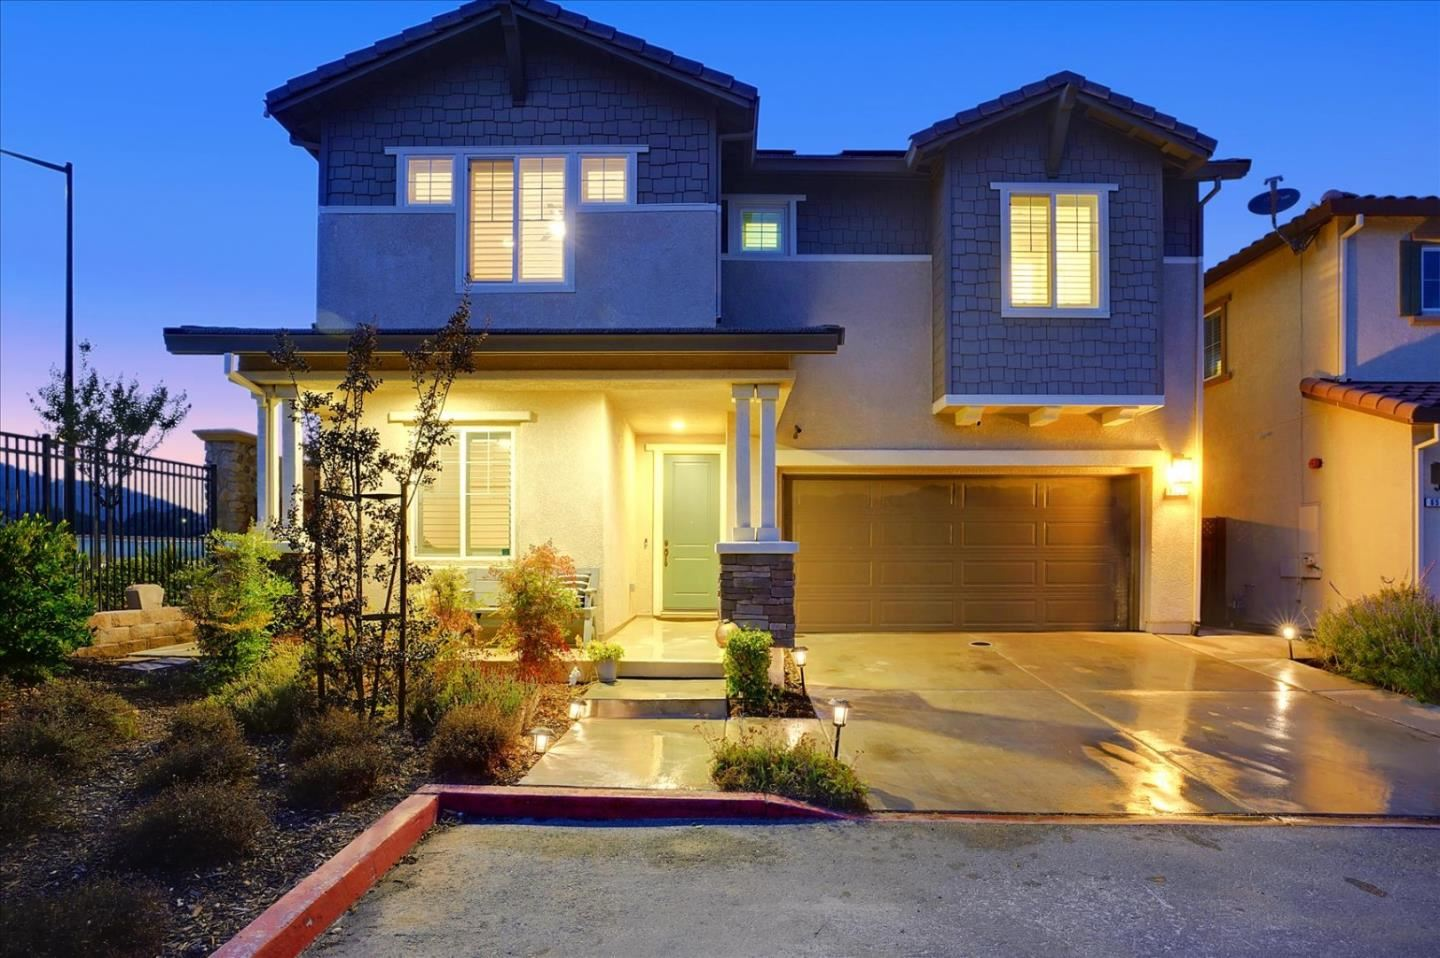 Photo for 6521 Sanchez Place, GILROY, CA 95020 (MLS # ML81865272)